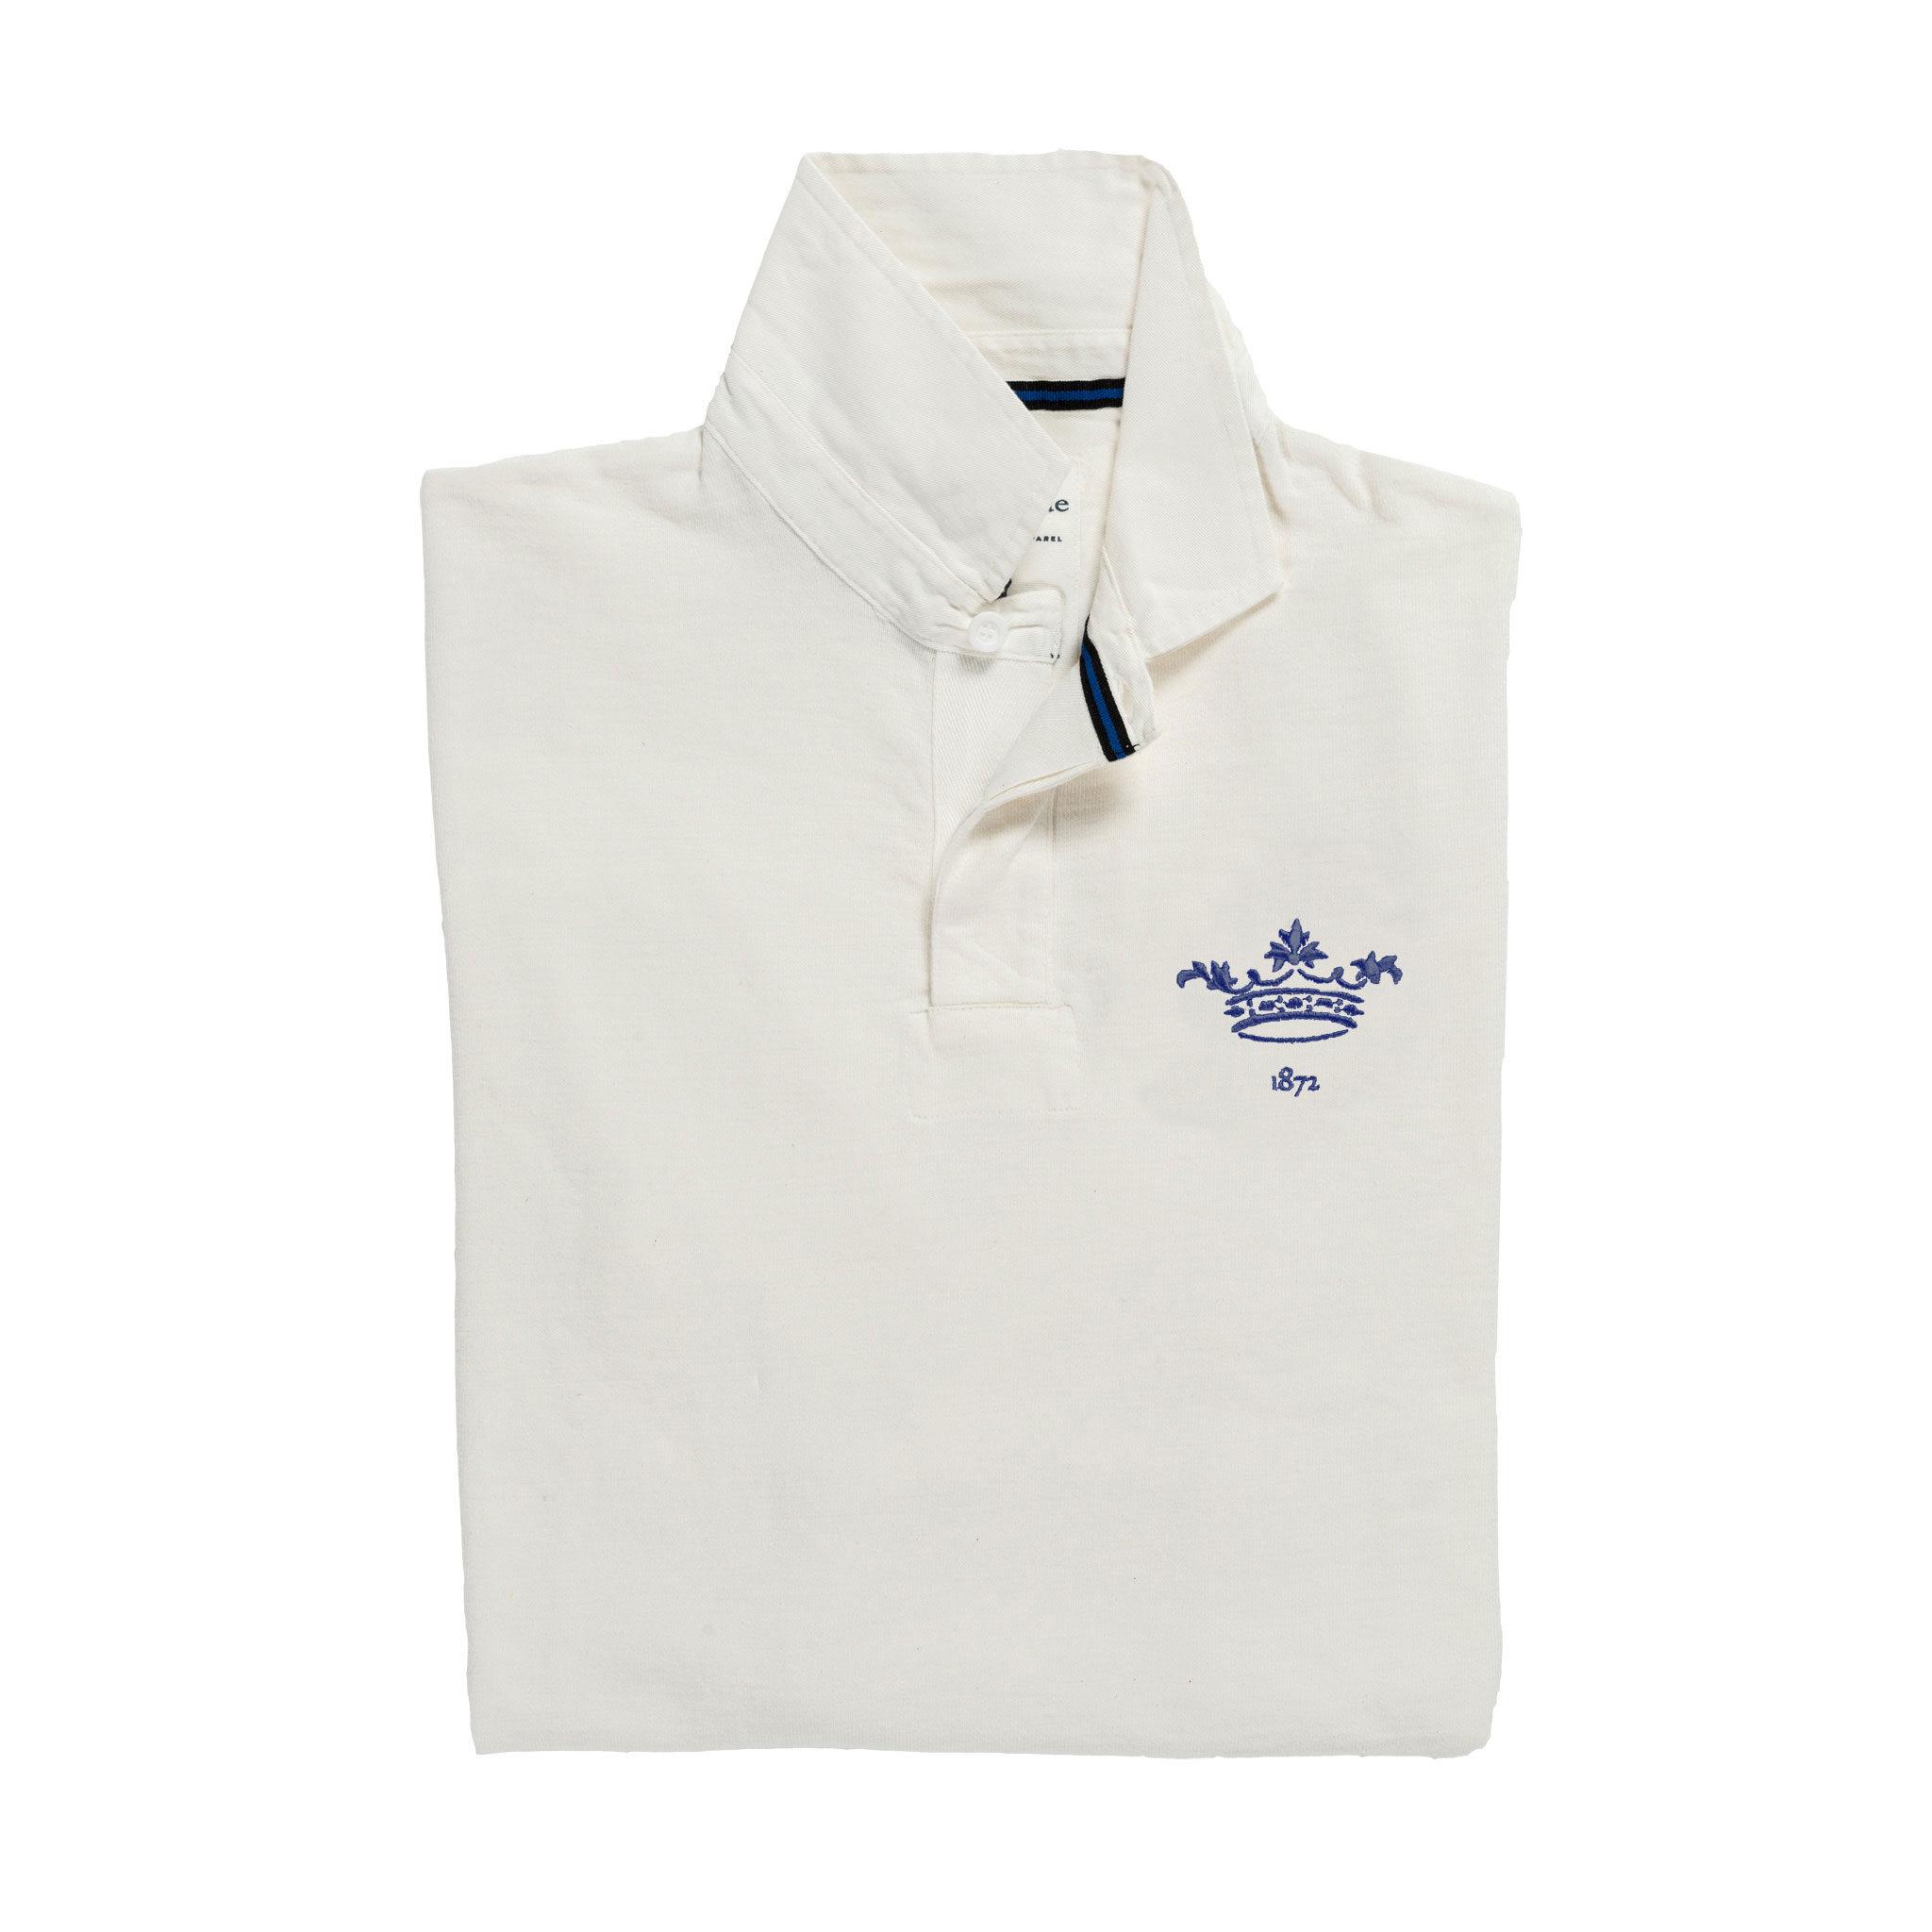 Oxford 1872 Rugby Shirt White_Folded